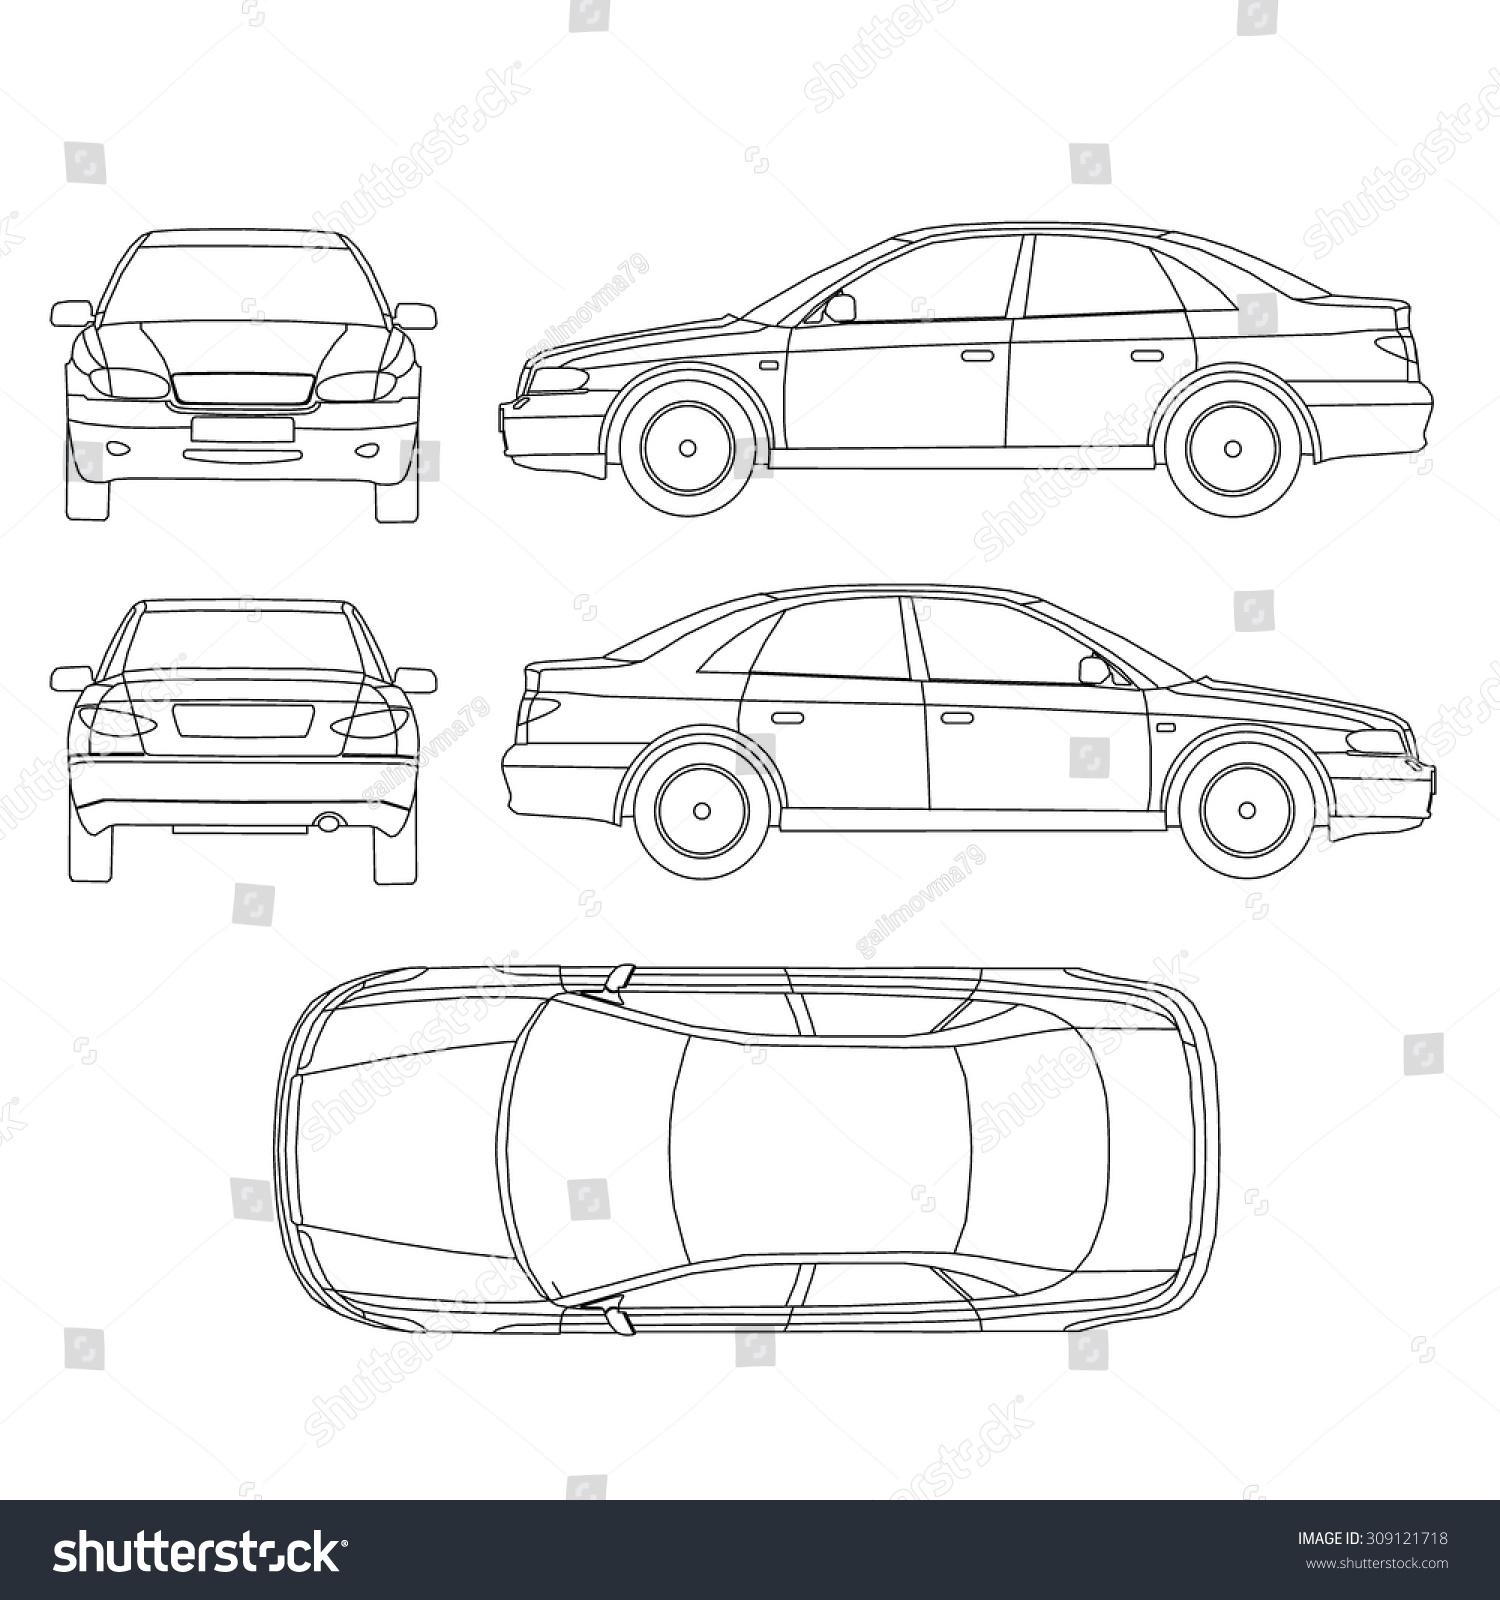 Car Line Draw Insurance Rent Damage Stock Vector 309121718